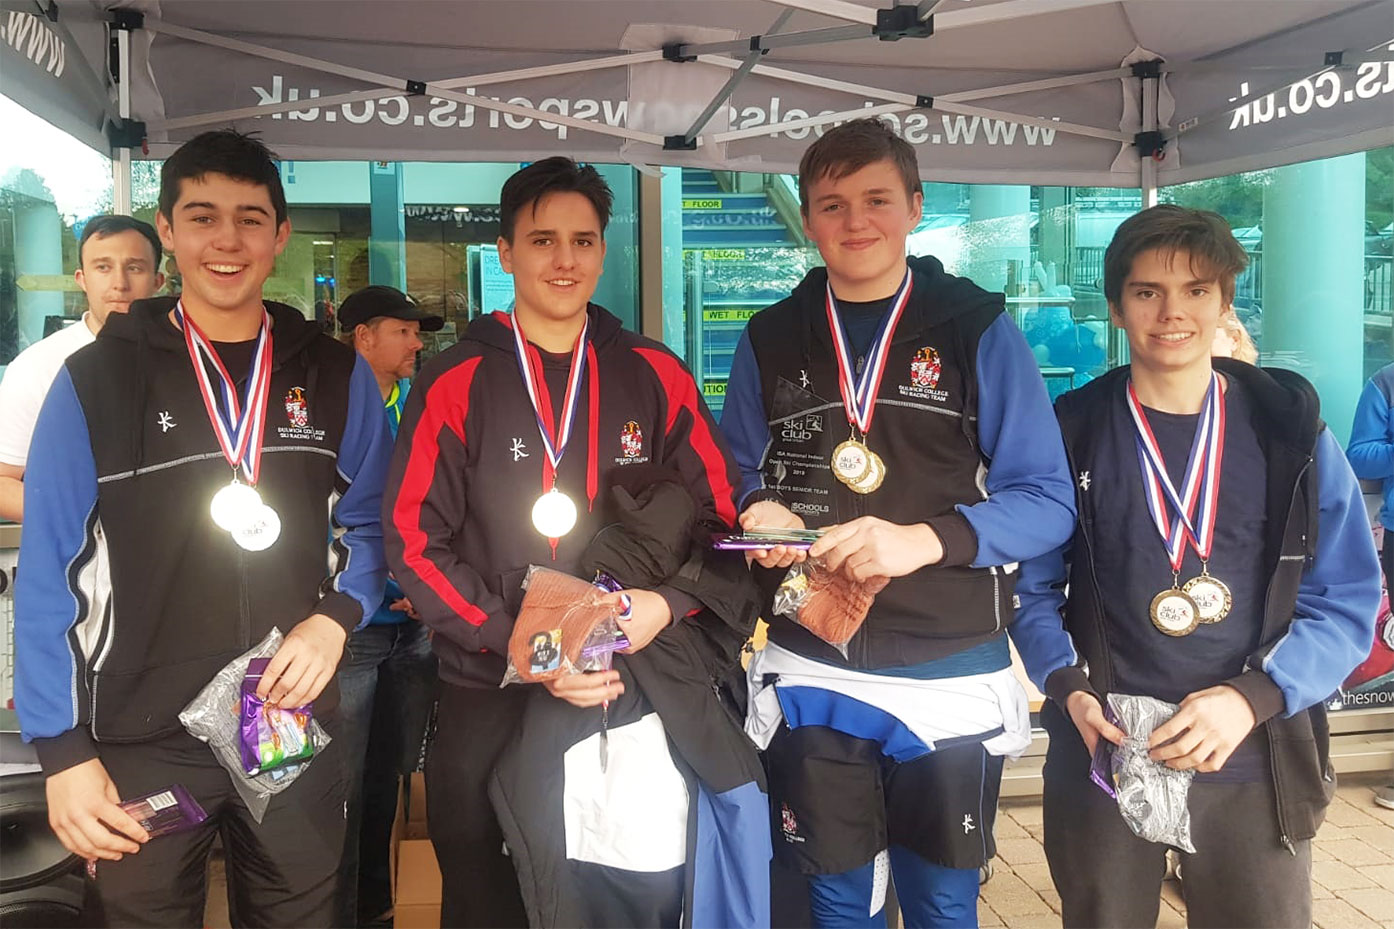 Dulwich 'A' win National Indoor Open Ski Championships